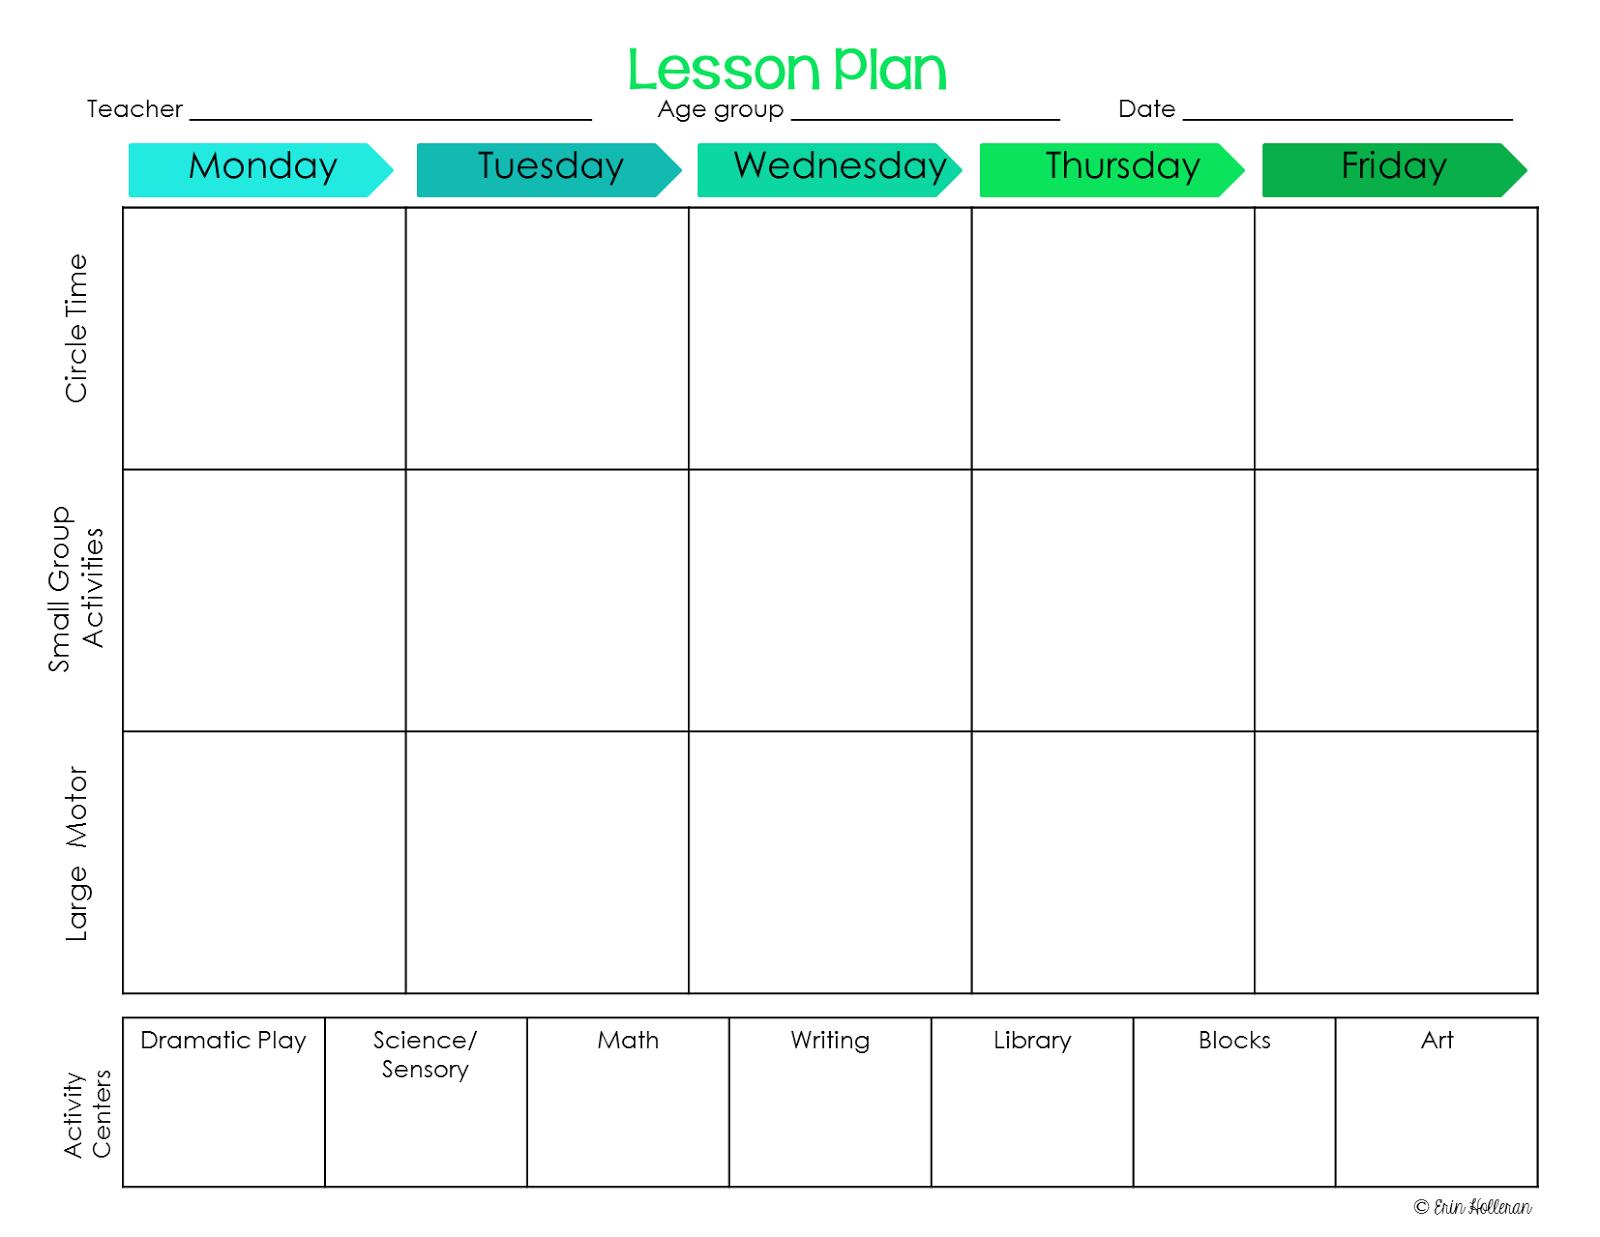 Preschool Ponderings: Make your lesson plans work for you